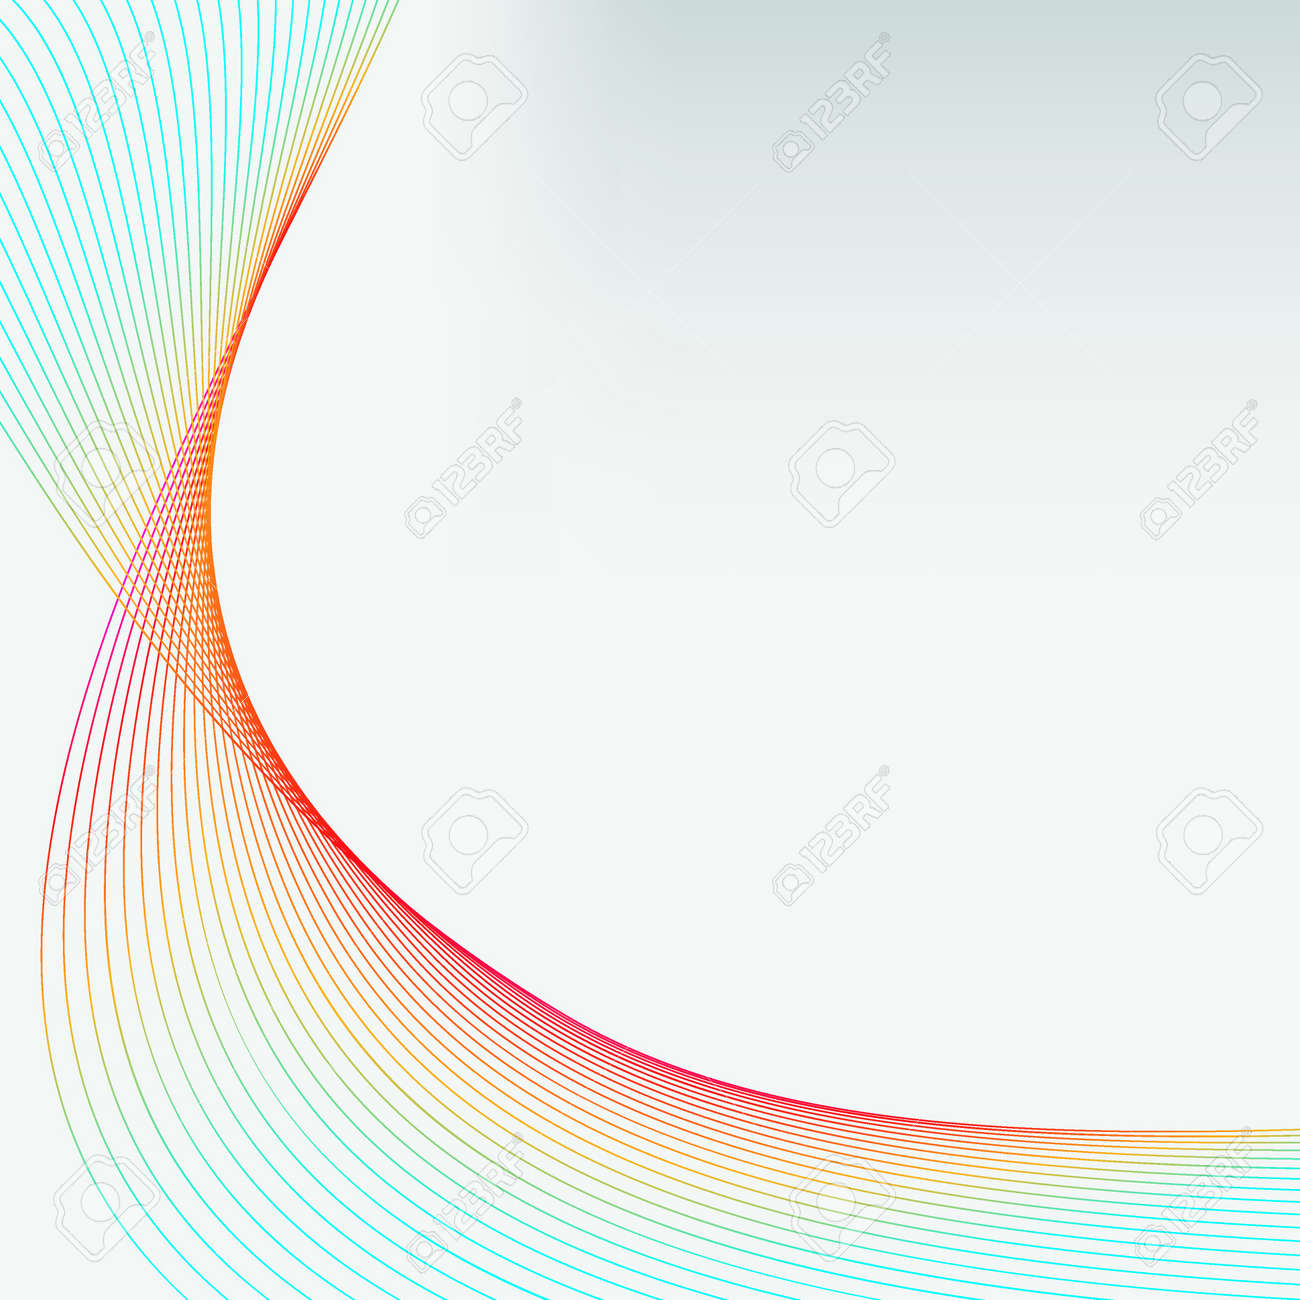 Abstract, Background Stock Vector - 12949052